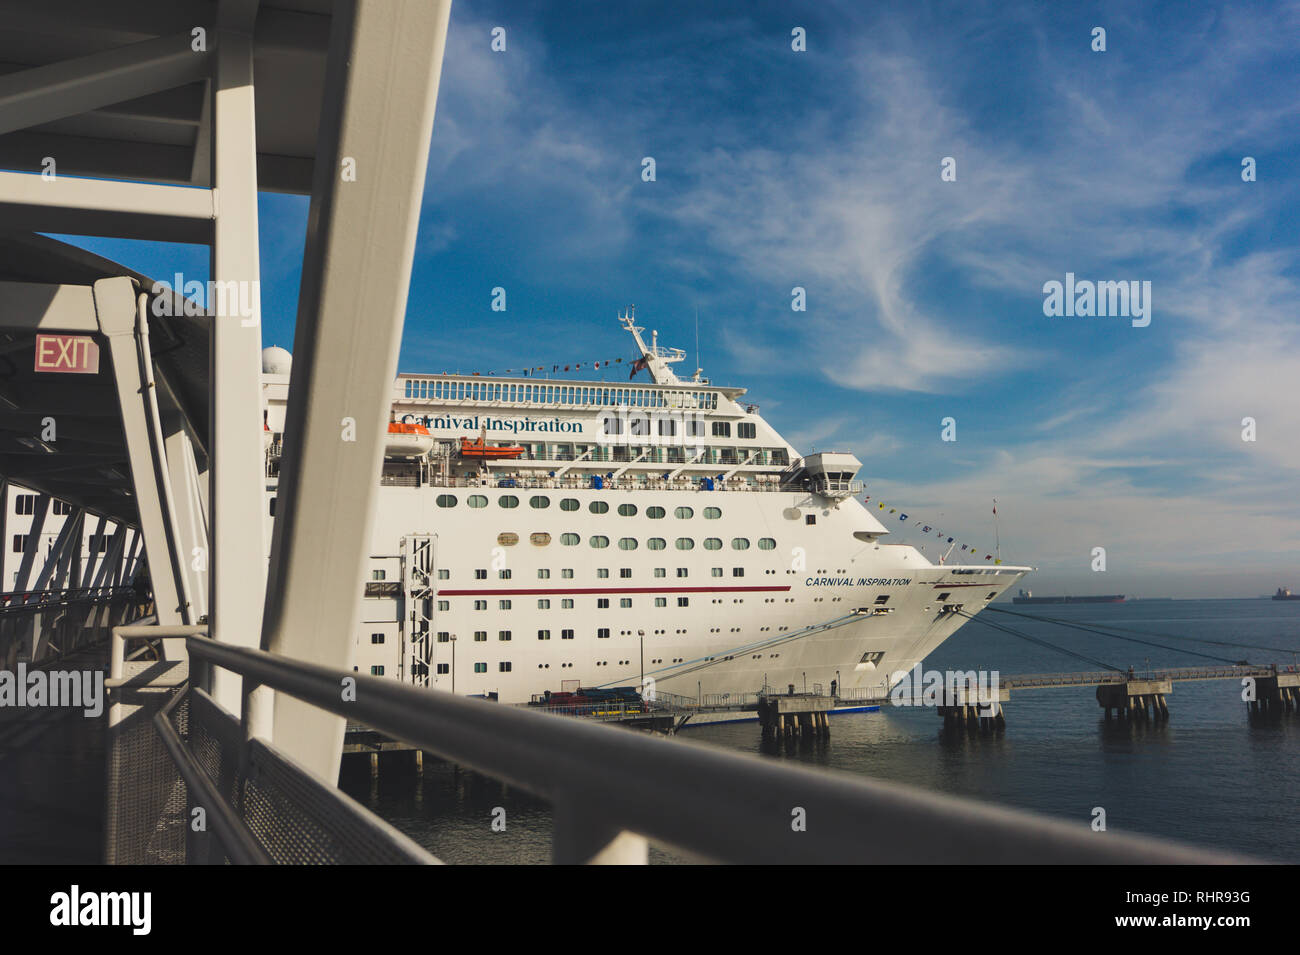 The Carnival cruise ship 'Inspiration' in port in Long Beach on a beautiful sunny day with blue skies- includes the ramp to board the boat - (embark) - Stock Image